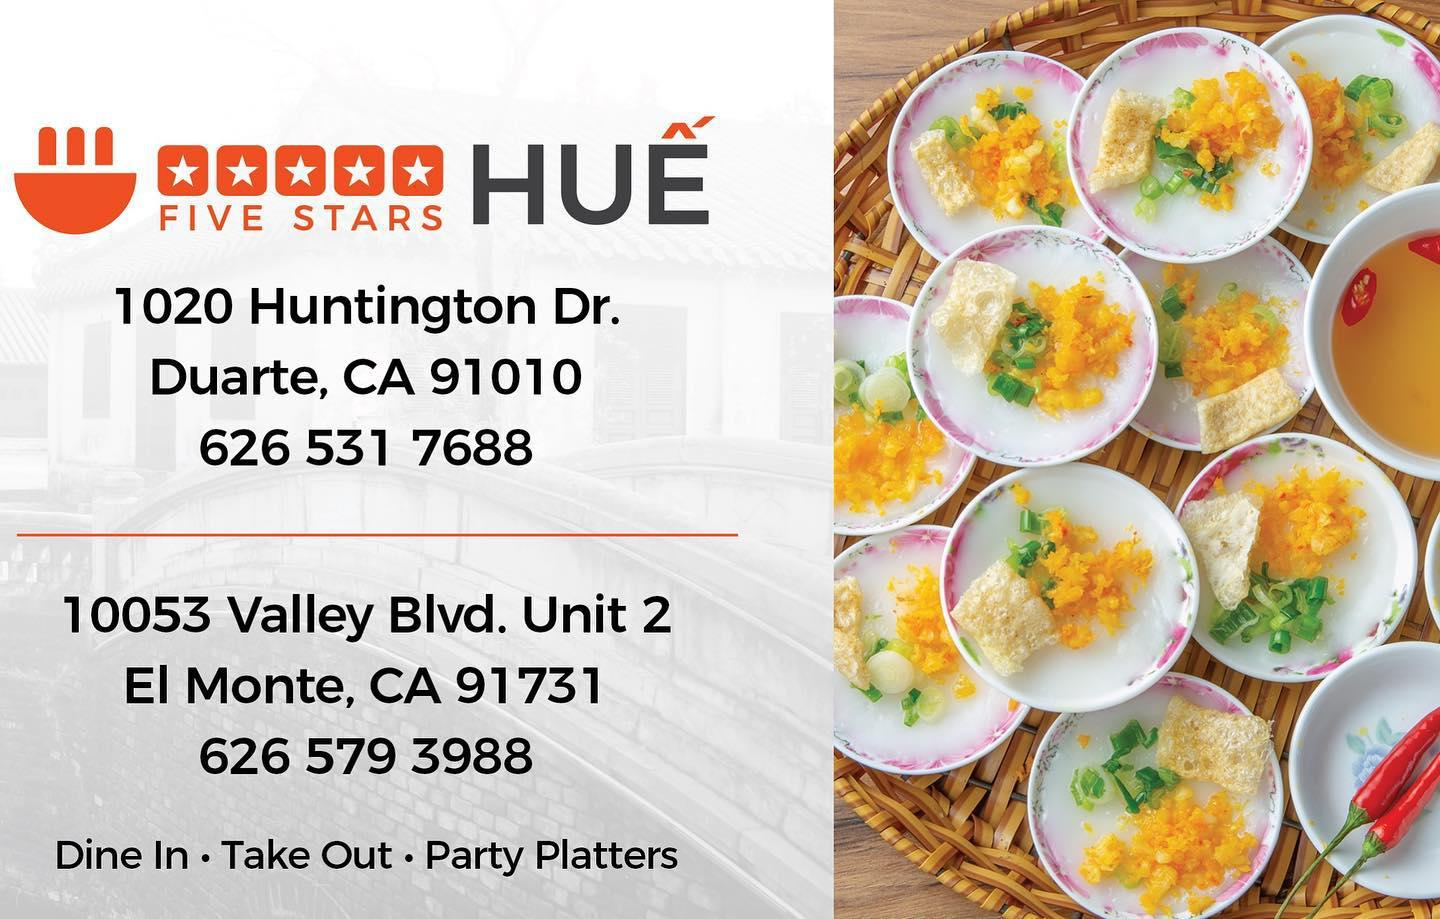 Meet us at our new location 5 Stars Hue @ Duarte 11/05?? ??????????! 1020 Hungtington Dr., Duarte, C 5 Stars Hue Duarte (626)531-7688